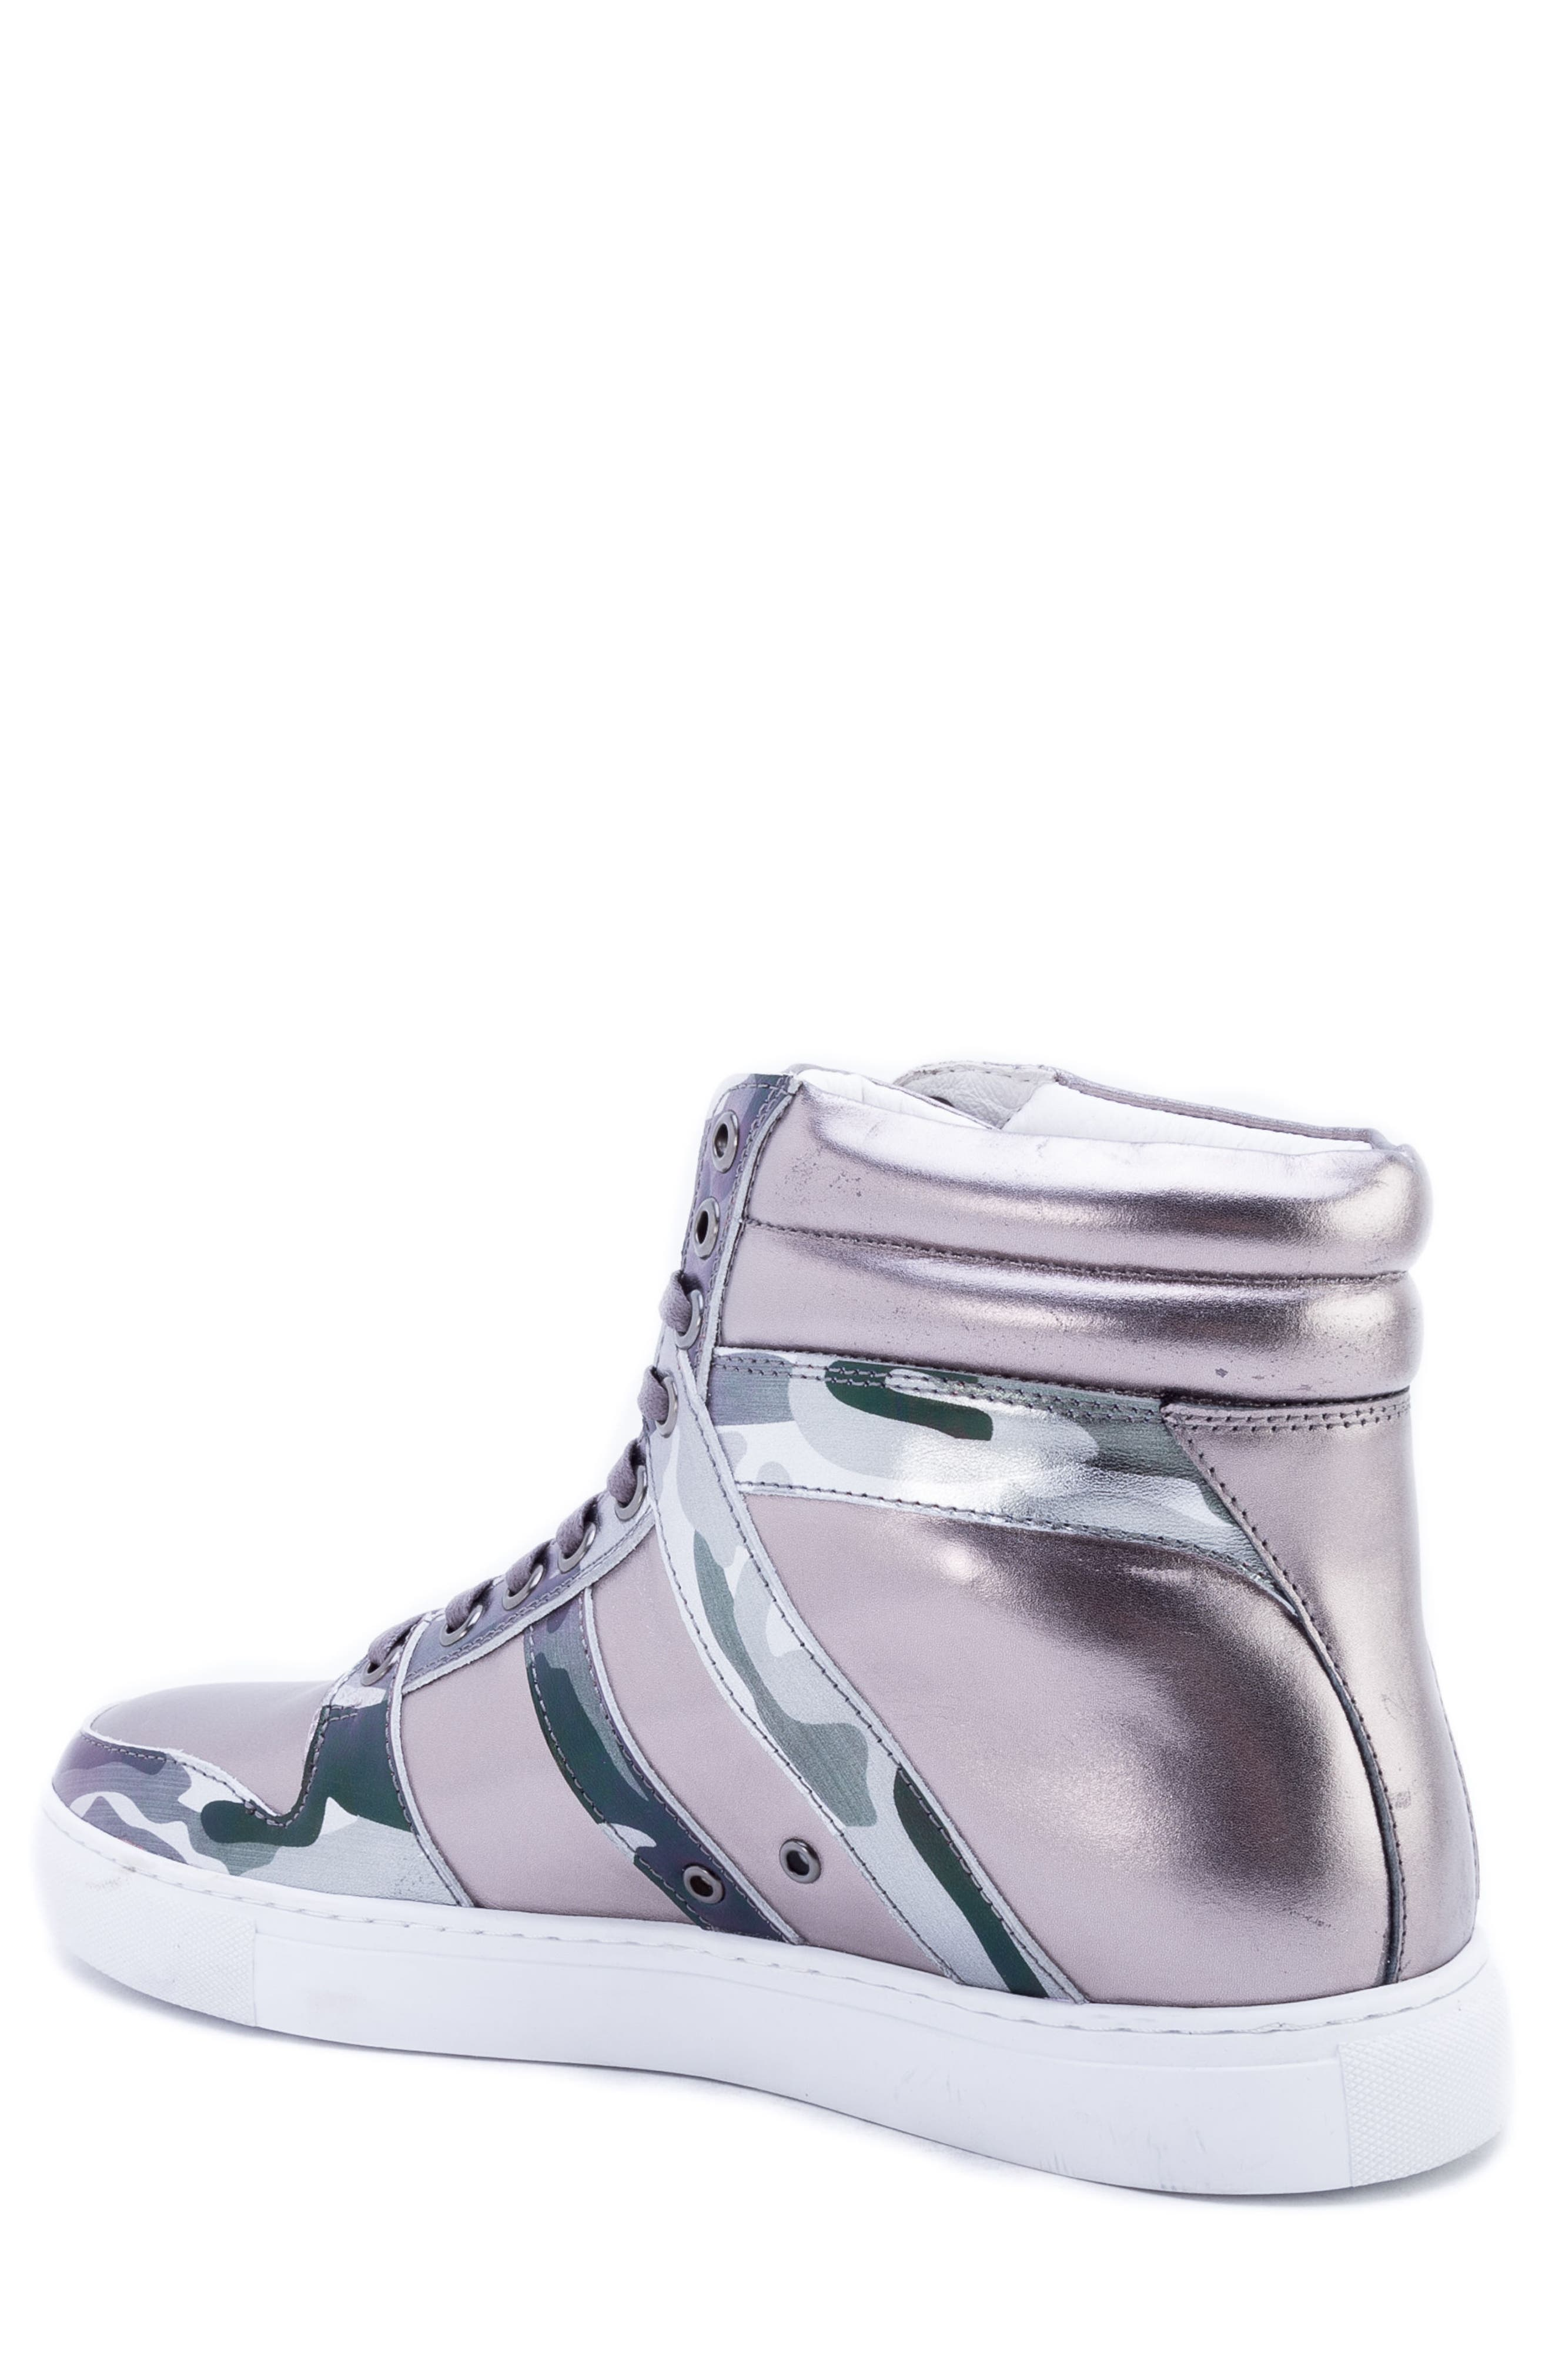 Badgley Mischka Sutherland Sneaker,                             Alternate thumbnail 2, color,                             GREY LEATHER